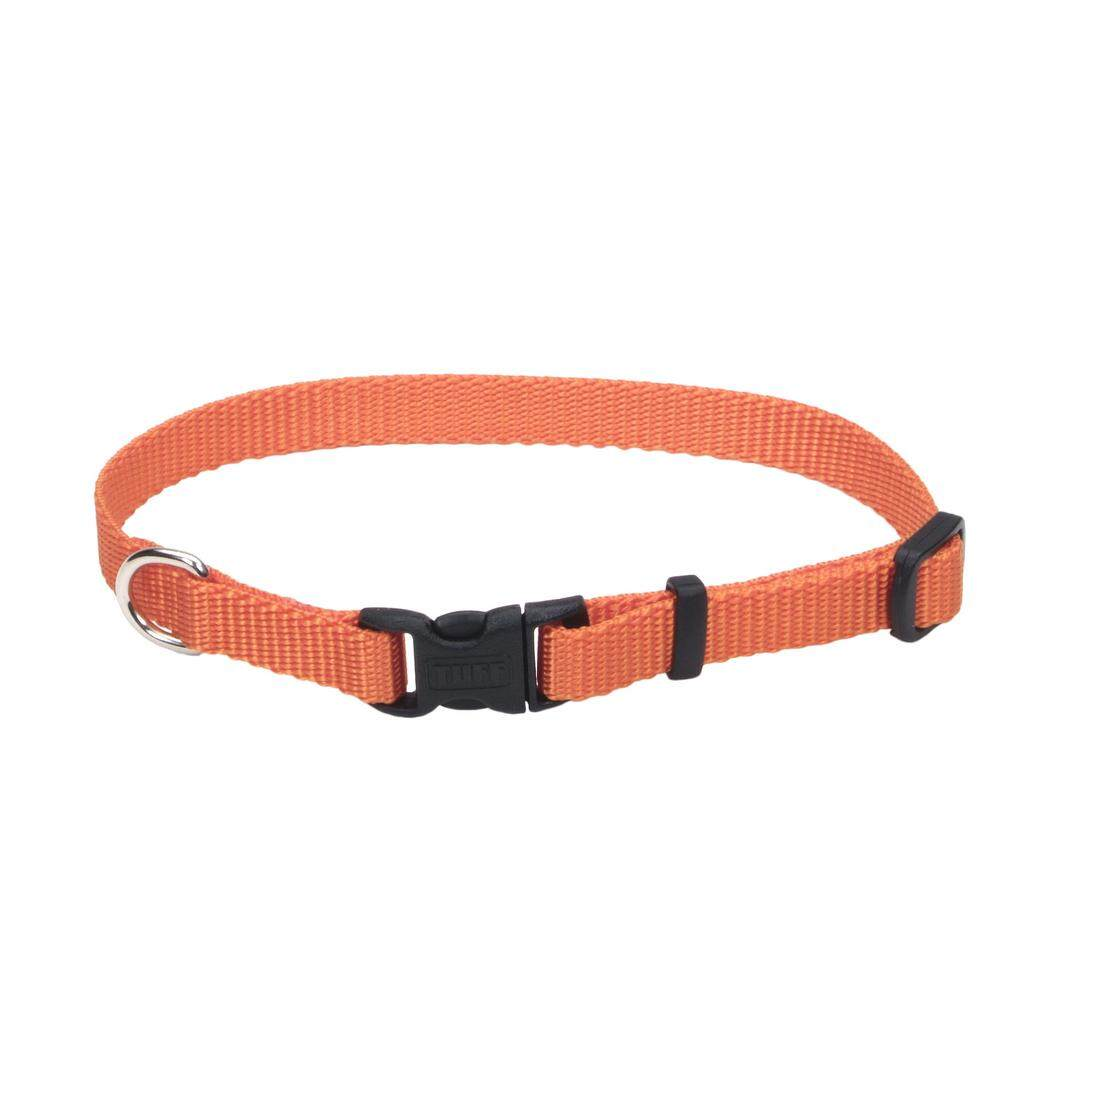 "[Coastal] Adjustable Nylon Dog Collar with Plastic Buckle 1"" L - Sunset Orange"